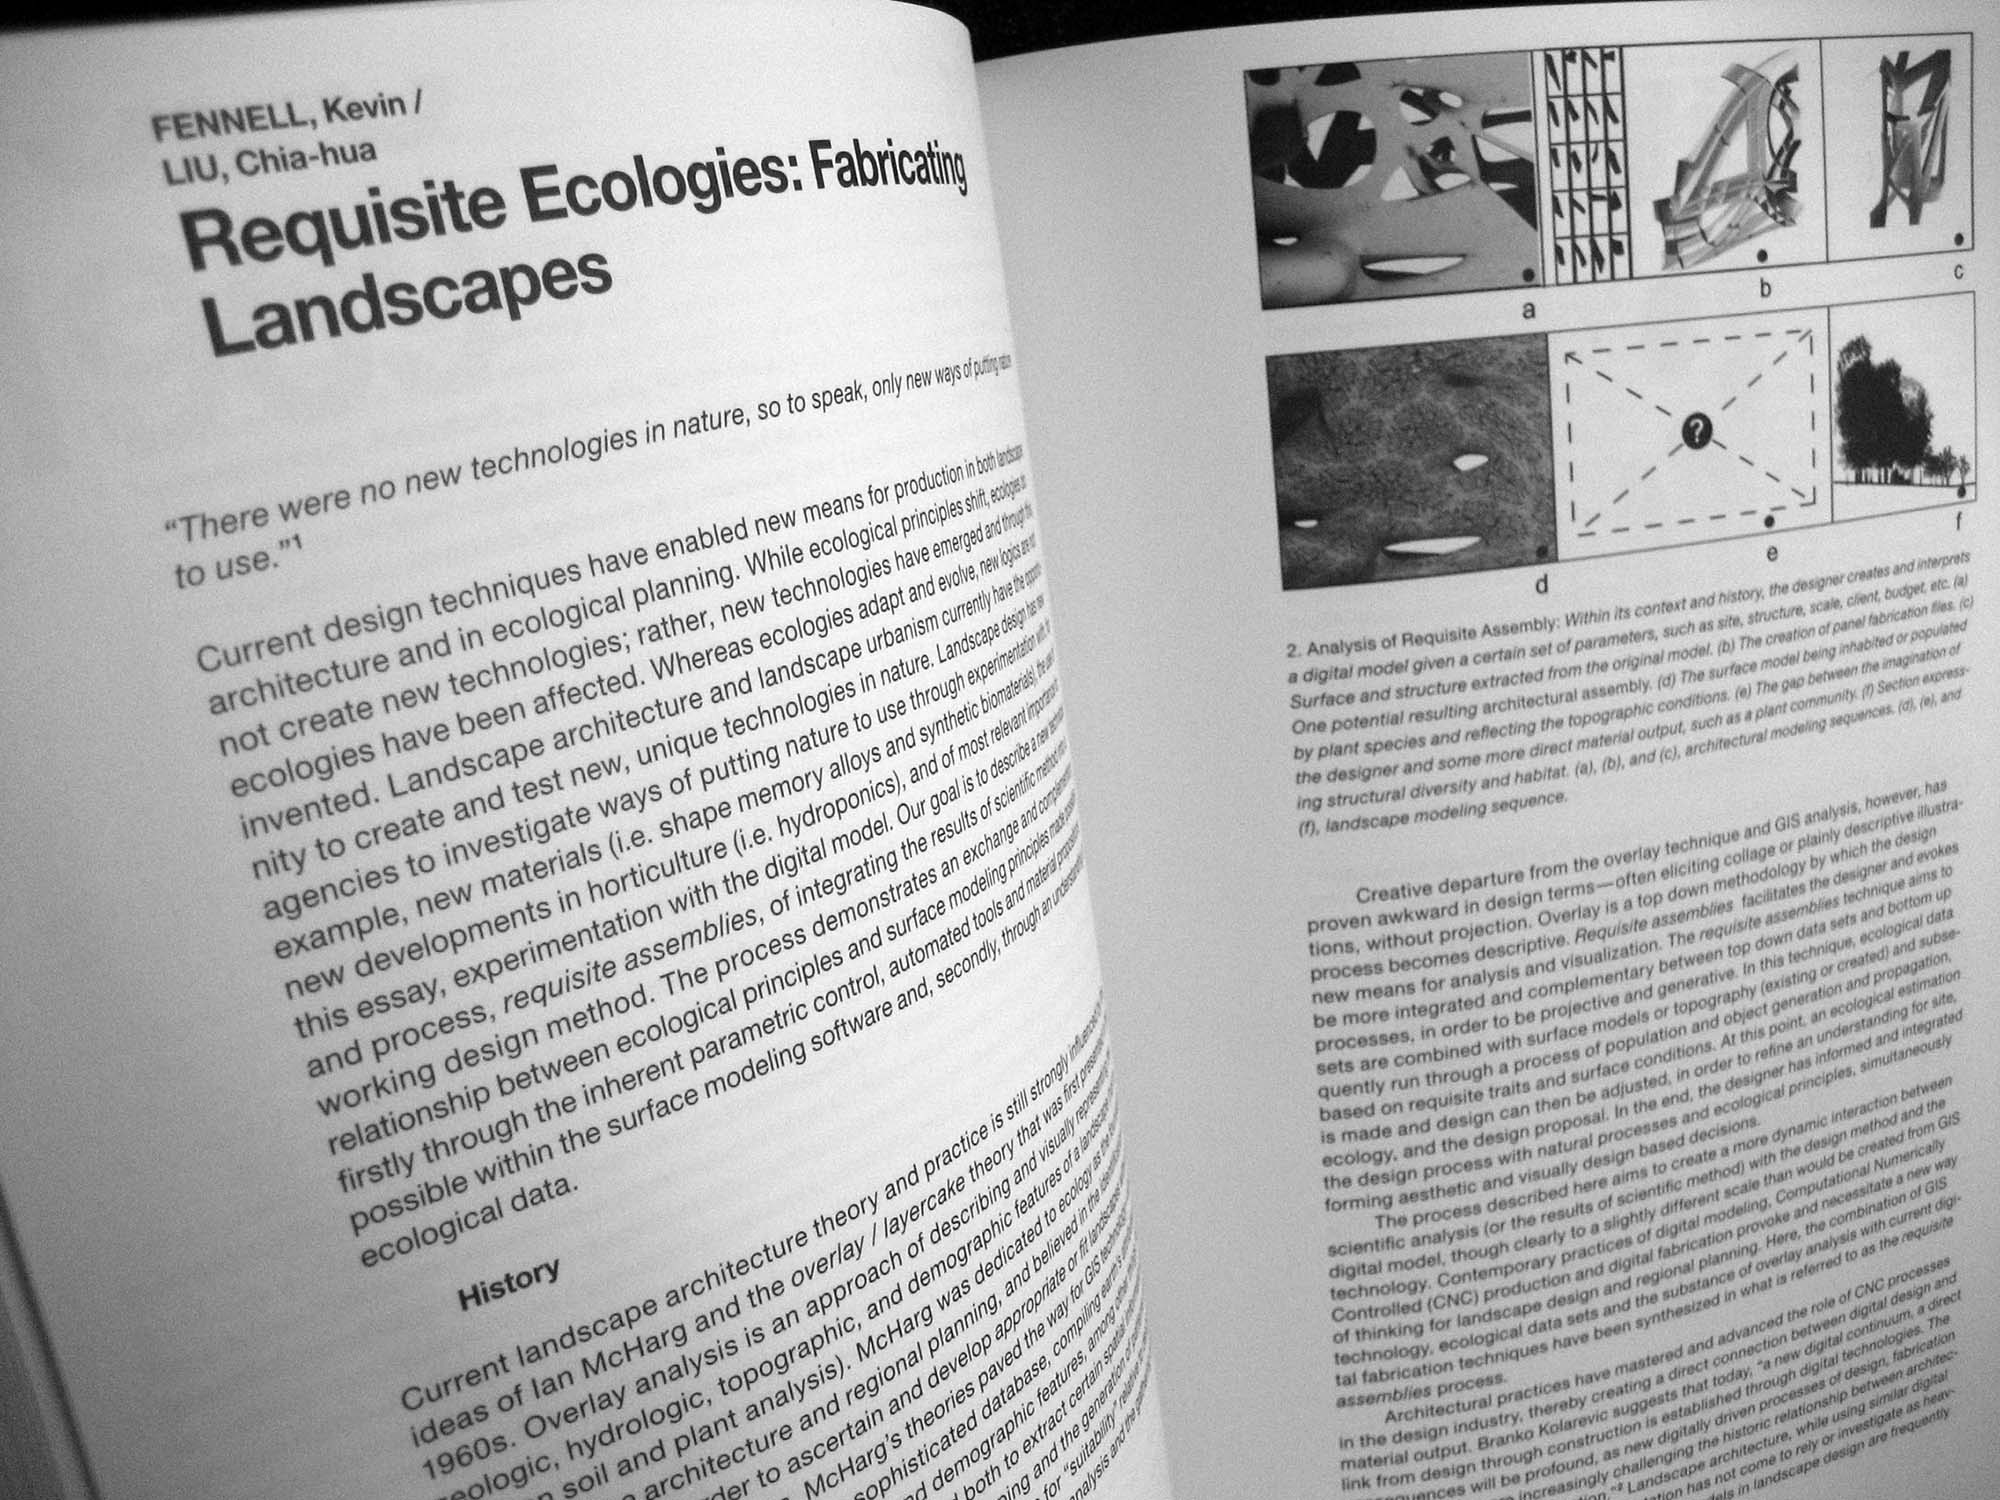 Requisite Ecologies: Fabricating Landscapes - 306090 建築刊物